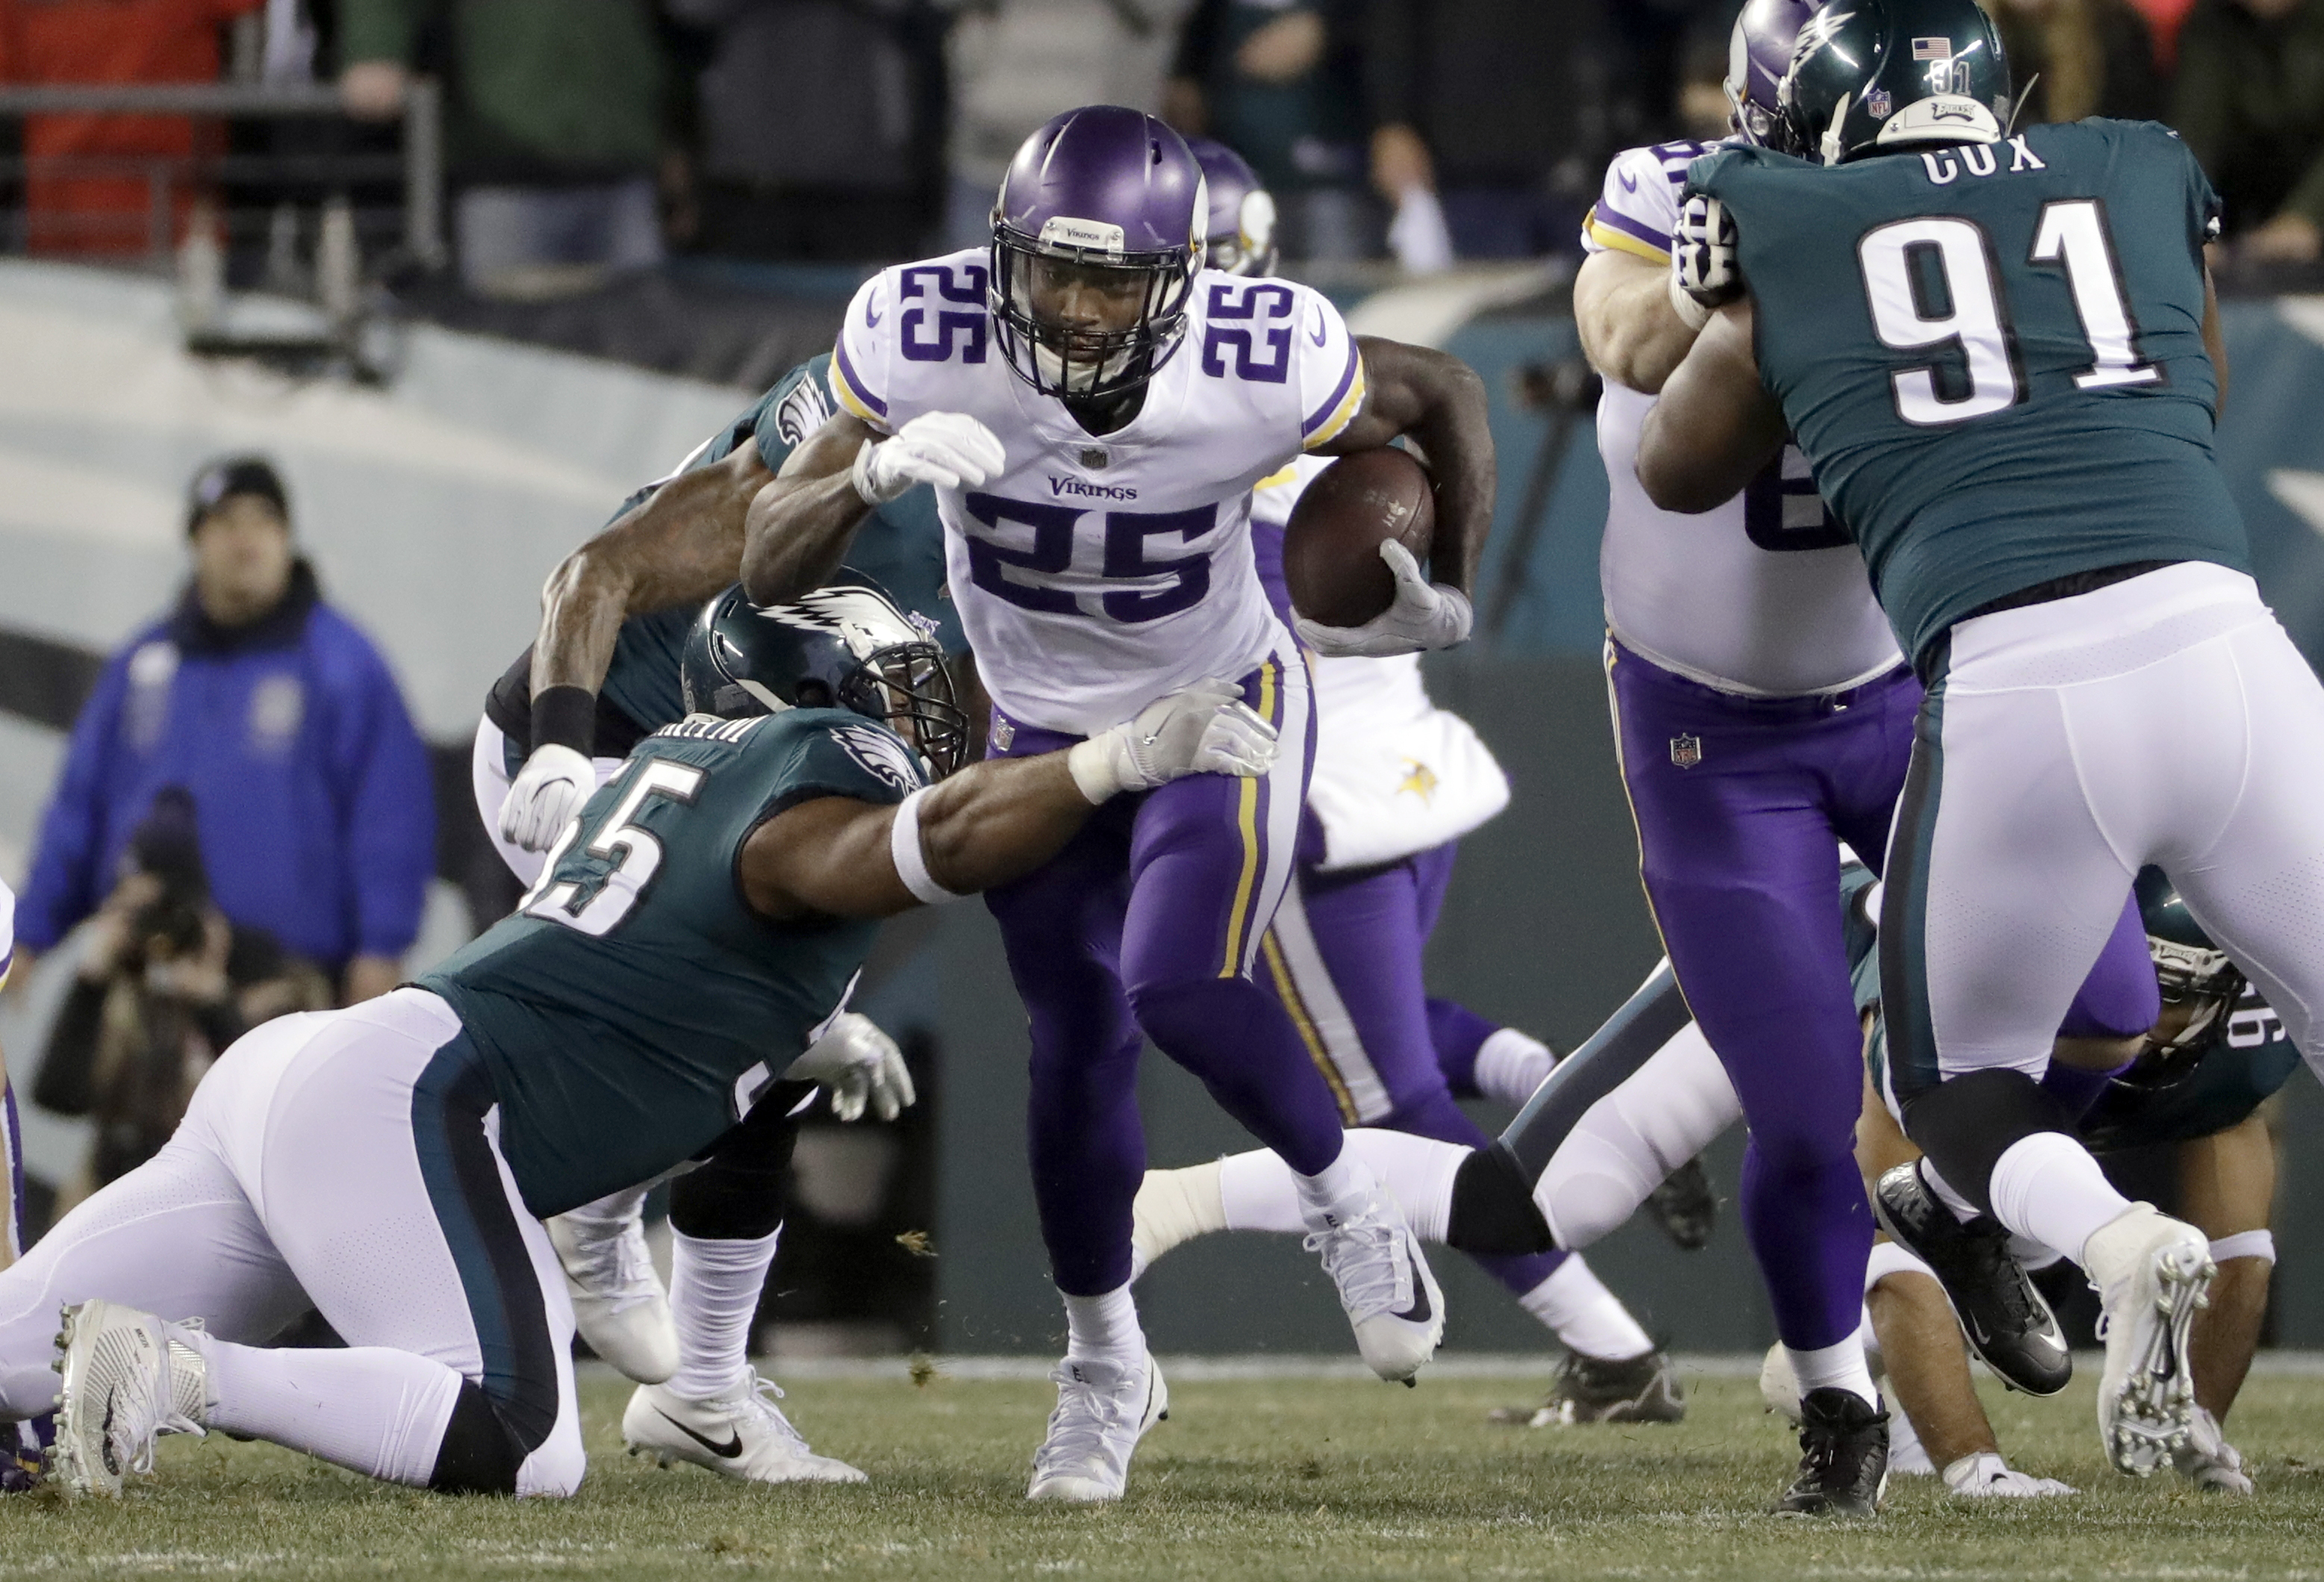 <div class='meta'><div class='origin-logo' data-origin='AP'></div><span class='caption-text' data-credit='APAP Photo/Matt Slocum'>Minnesota Vikings' Latavius Murray runs during the first half of the NFL football NFC championship game against the Philadelphia Eagles Sunday, Jan. 21, 2018, in Philadelphia.</span></div>